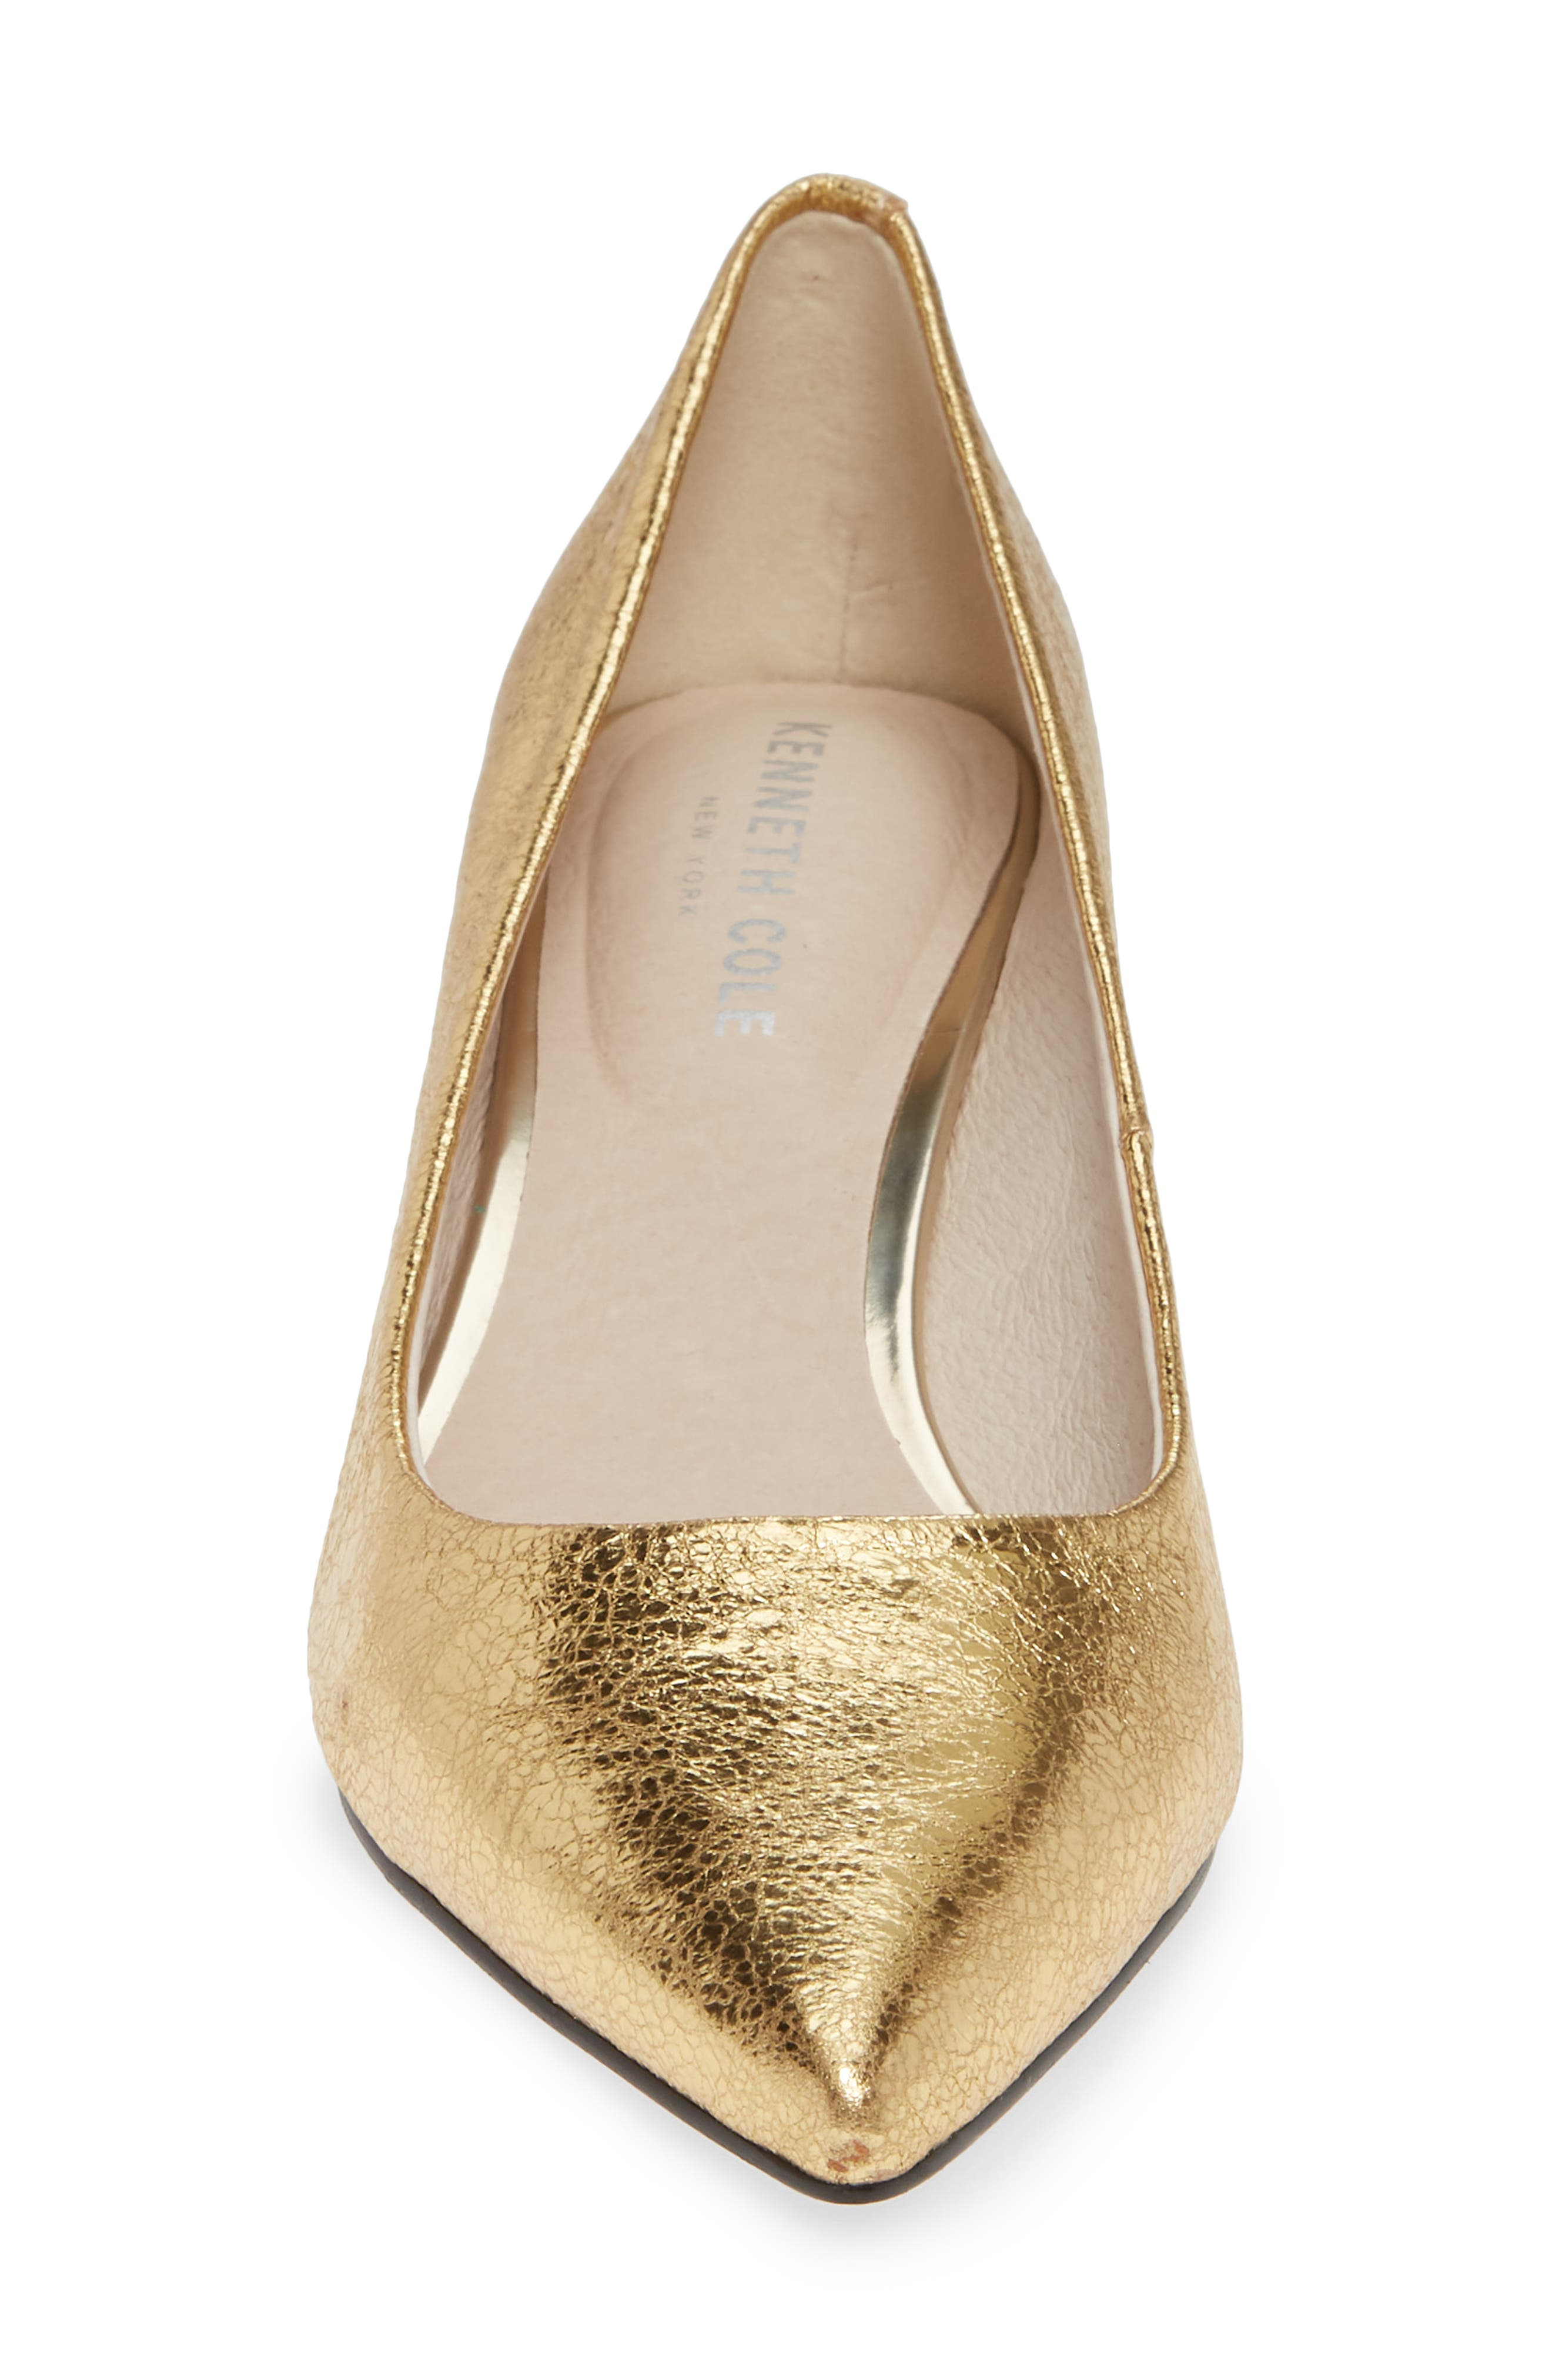 Riley 50 Pump,                             Alternate thumbnail 4, color,                             YELLOW GOLD LEATHER